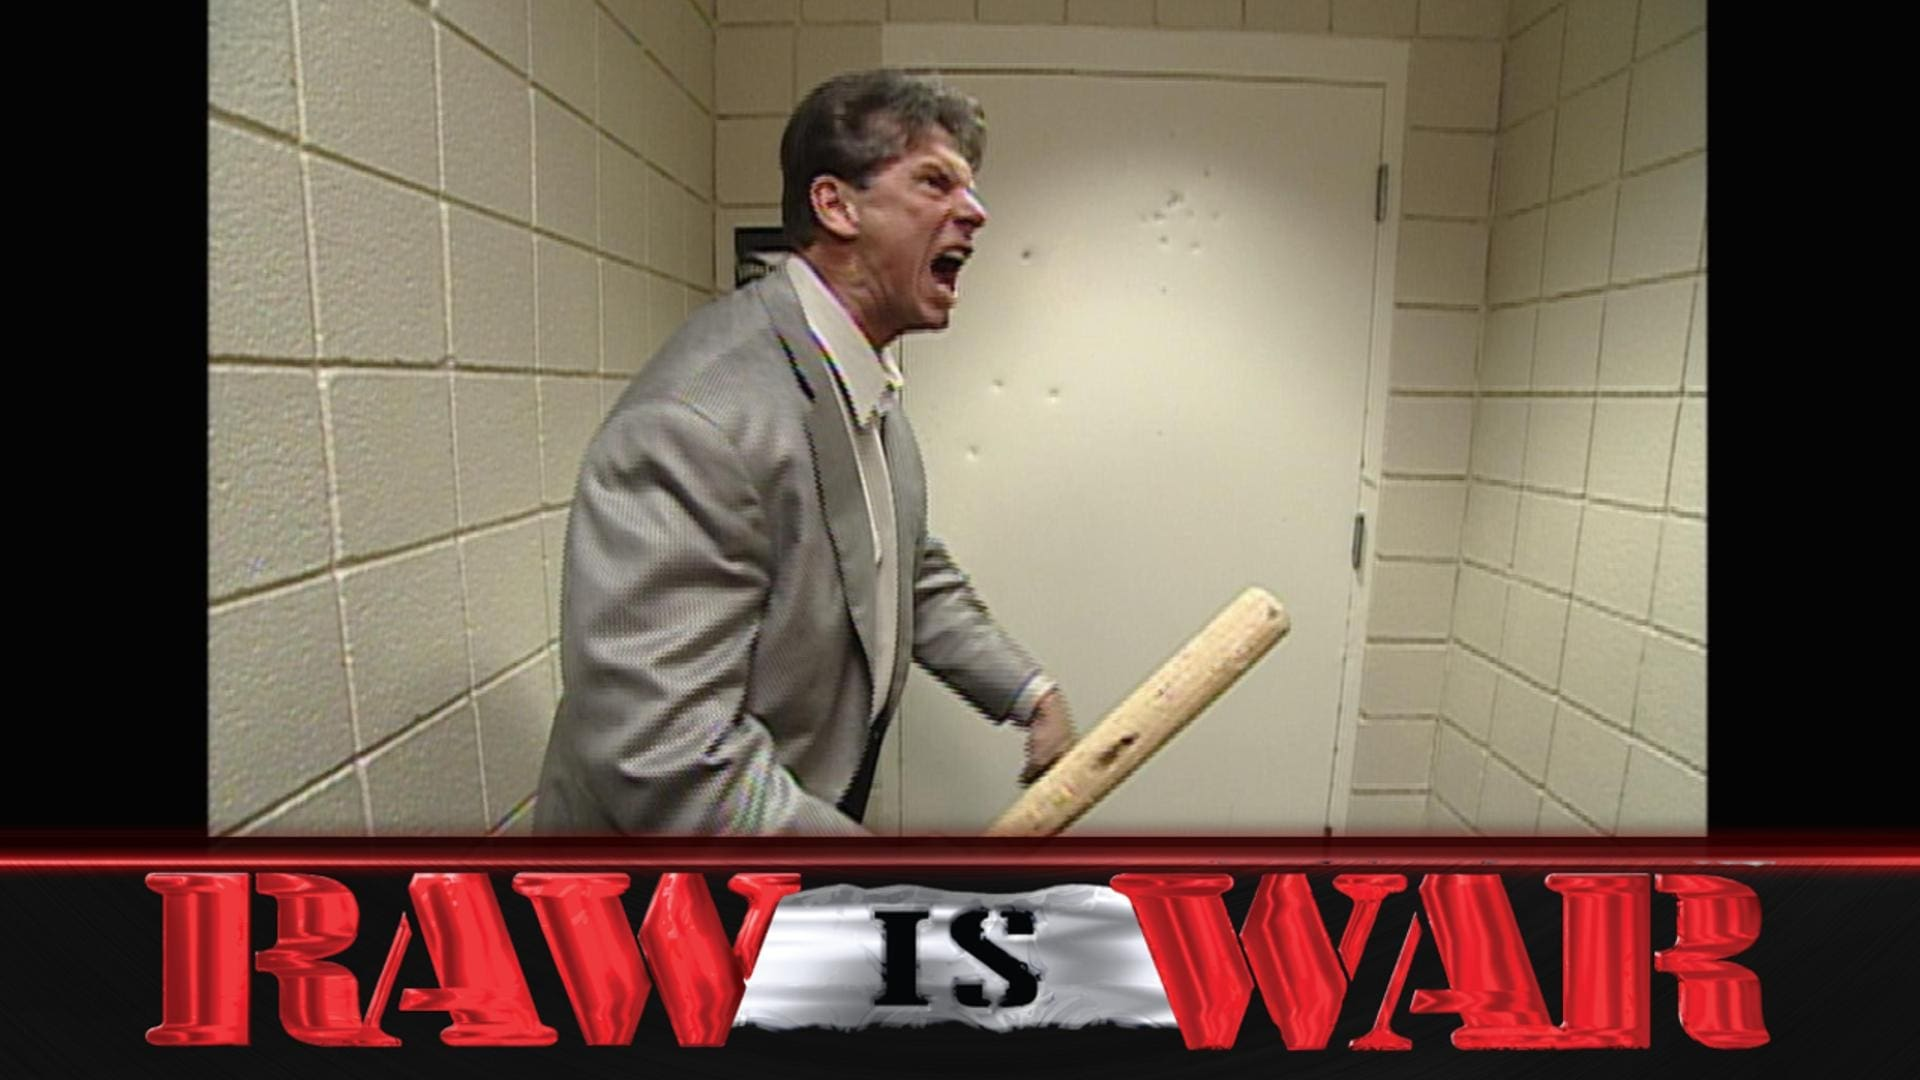 WWE Raw Season 7 :Episode 47  RAW is WAR 339